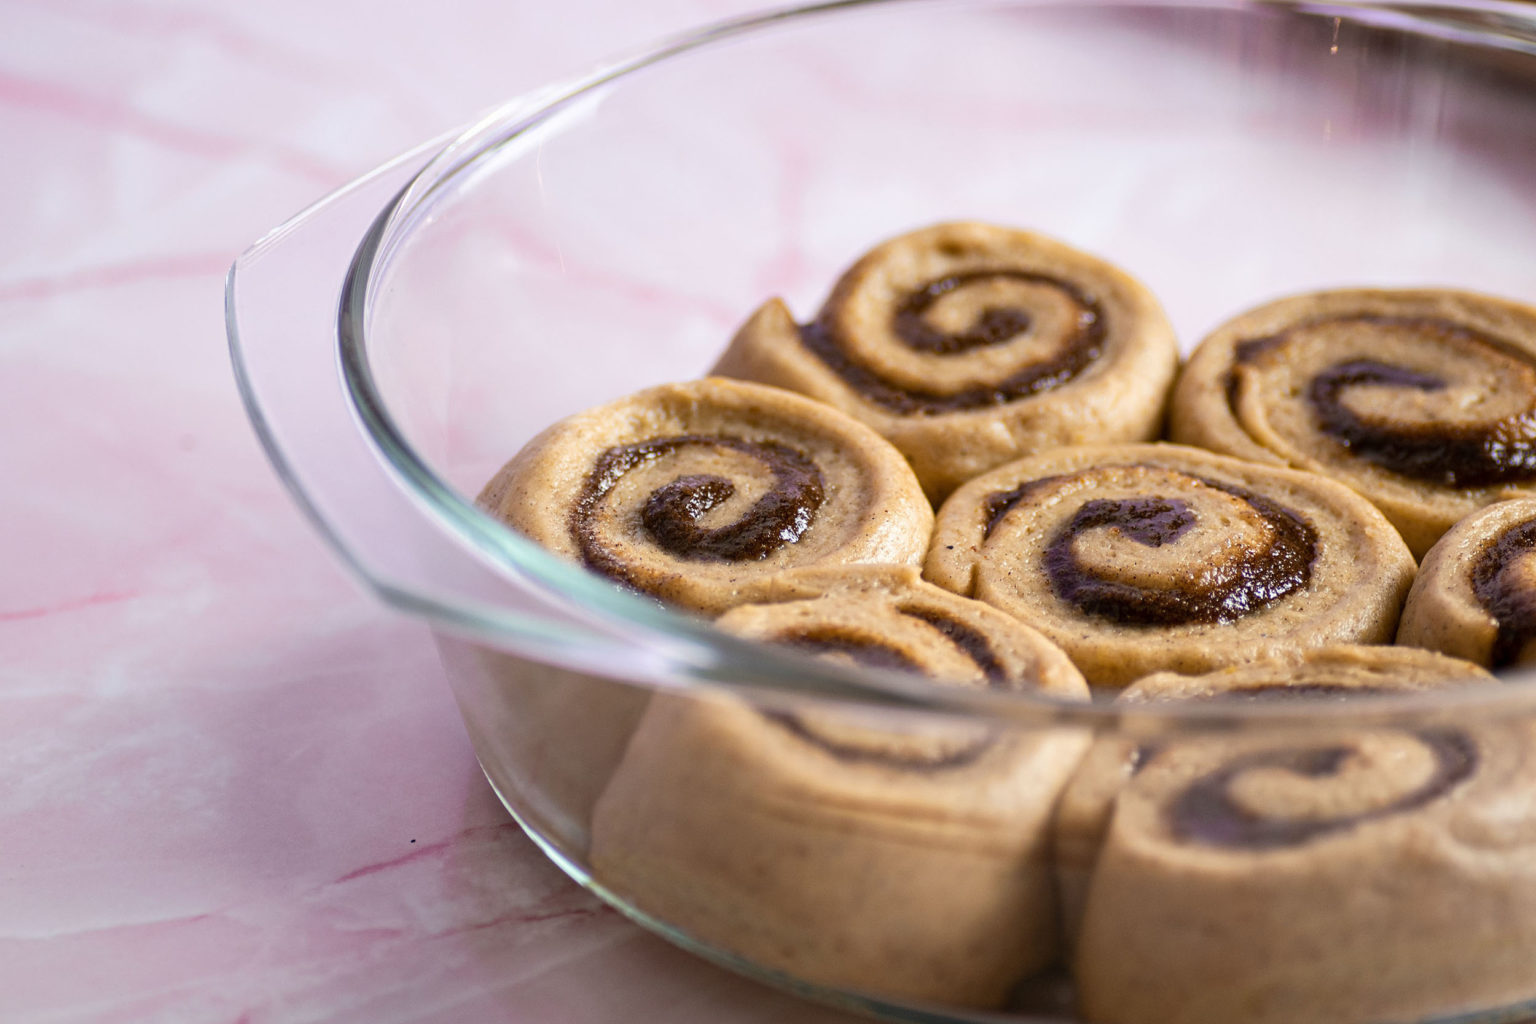 Uncooked cinnamon rolls in tray